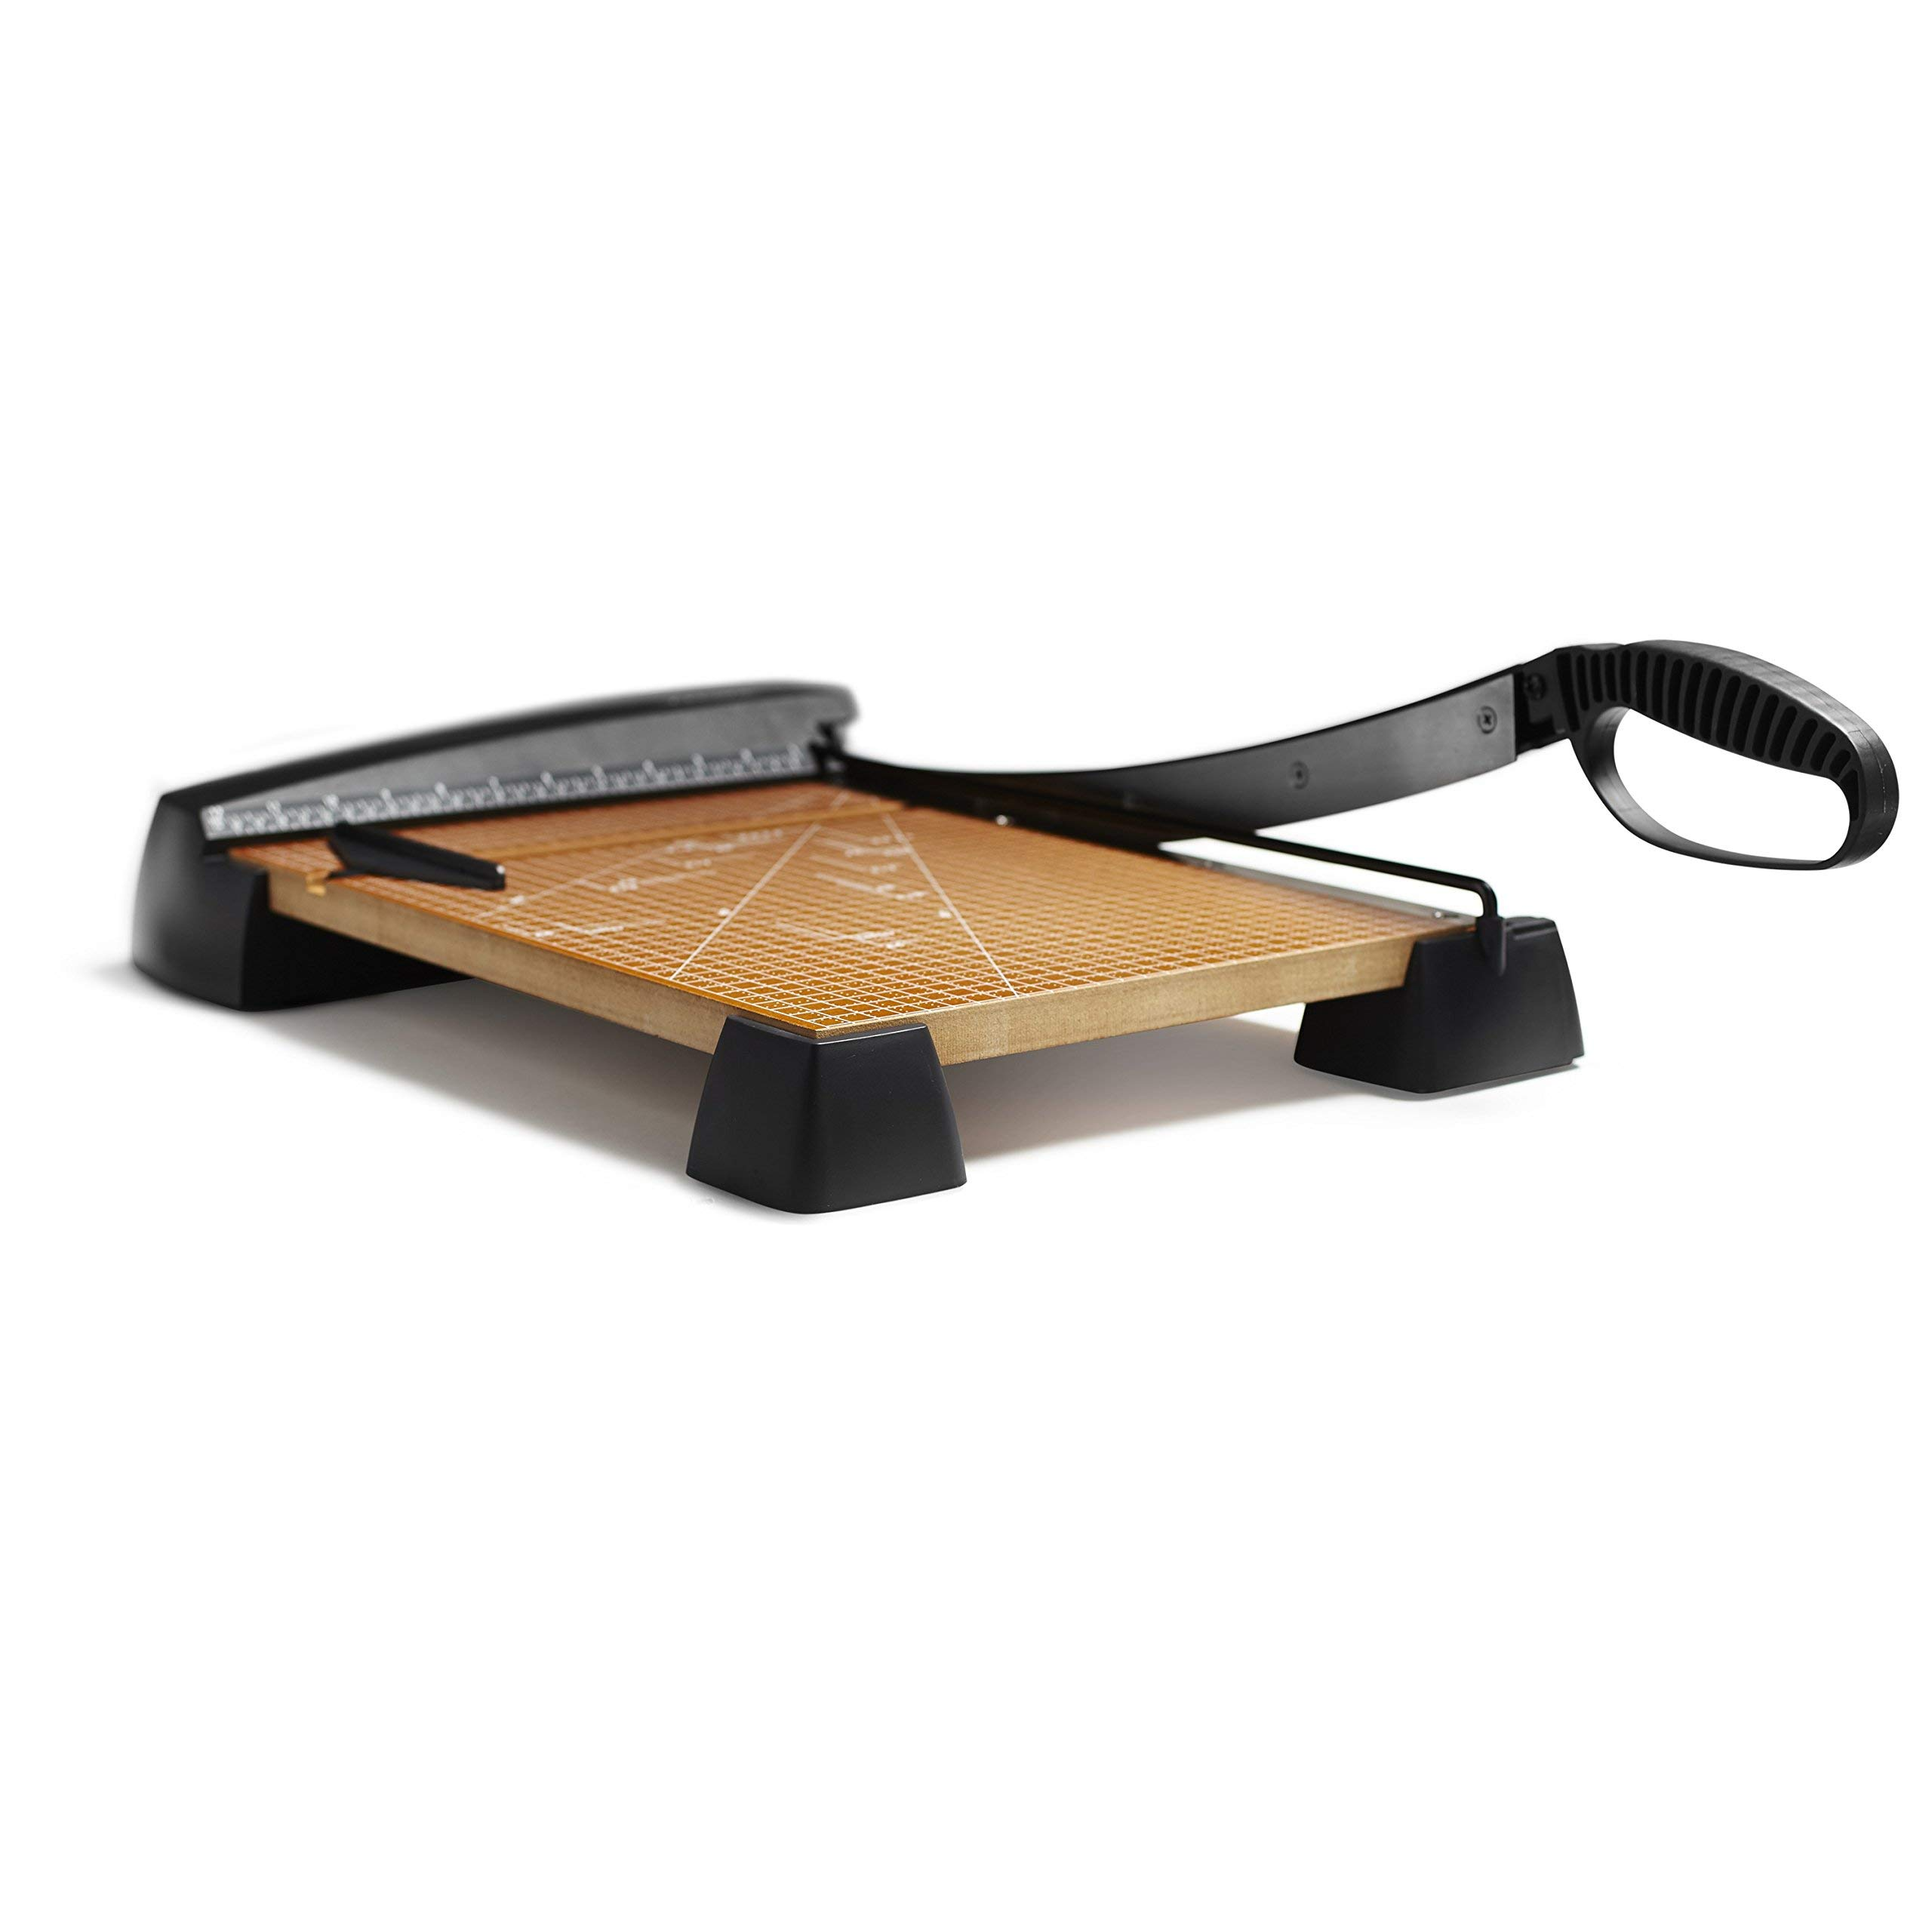 X-ACTO Heavy Duty Wood Guillotine Trimmer, 15 Inches (Renewed)